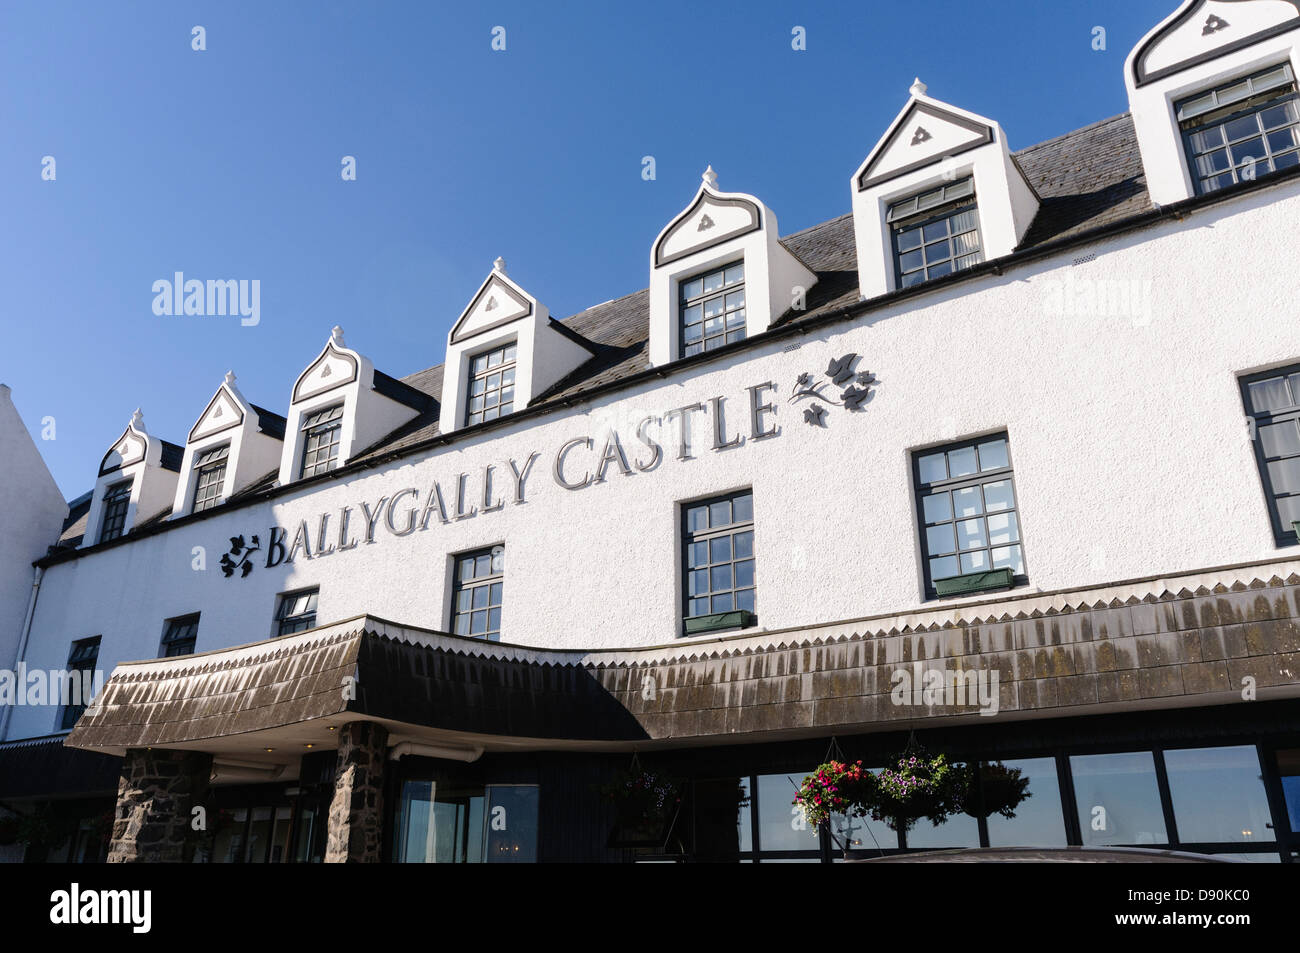 Ballygally Castle Hotel, Larne. Part of the Hastings Group of hotels in Northern Ireland, and supposedly haunted - Stock Image